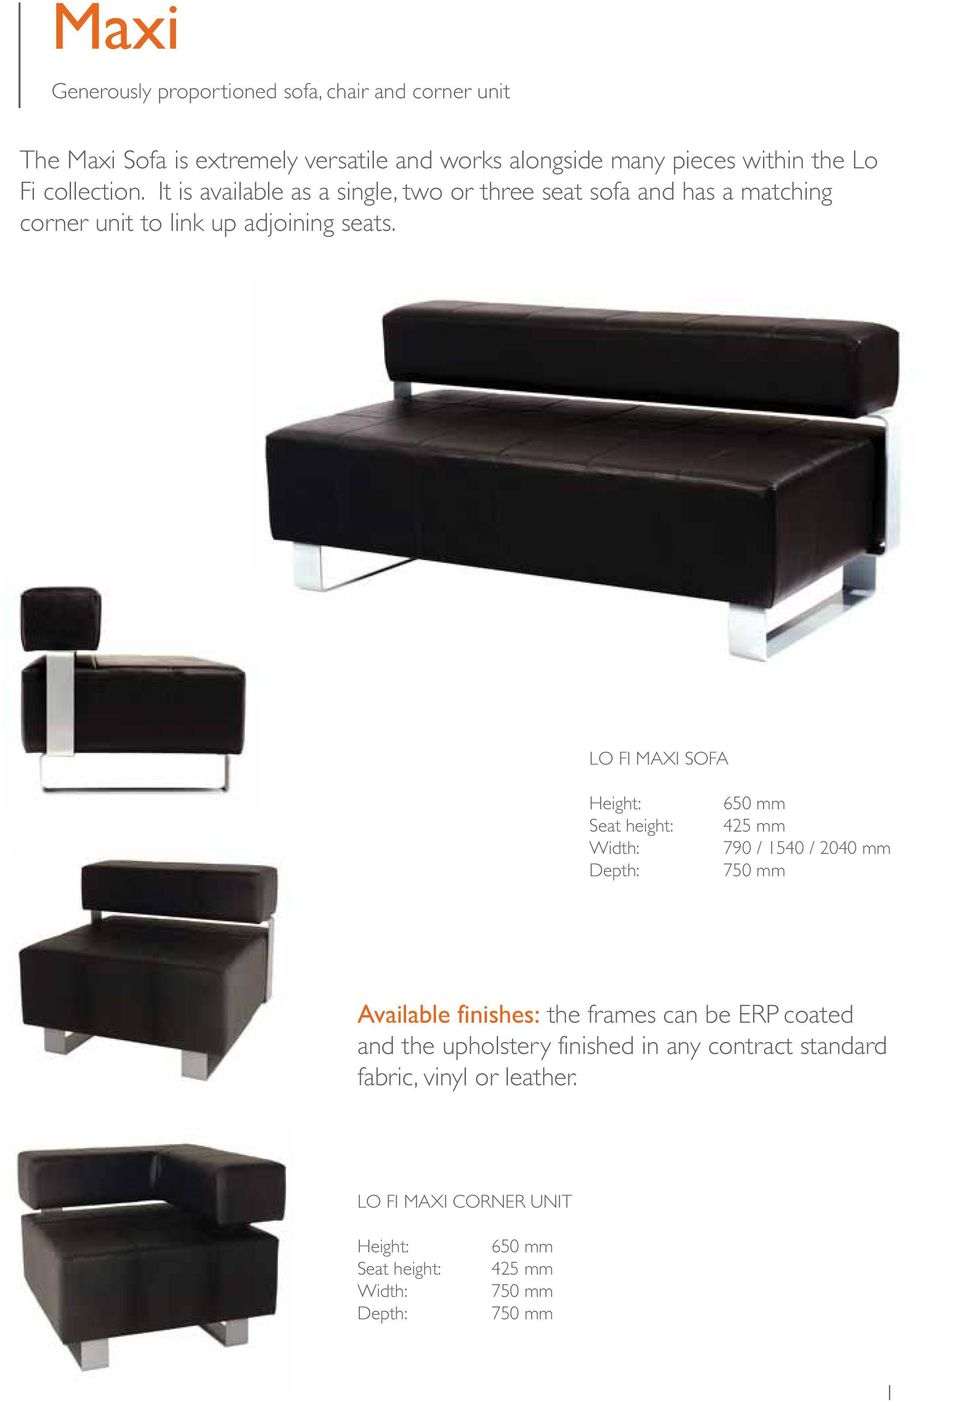 LO FI MAXI SOFA Seat height: 650 mm 425 mm 790 / 1540 / 2040 mm 750 mm Available finishes: the frames can be ERP coated and the